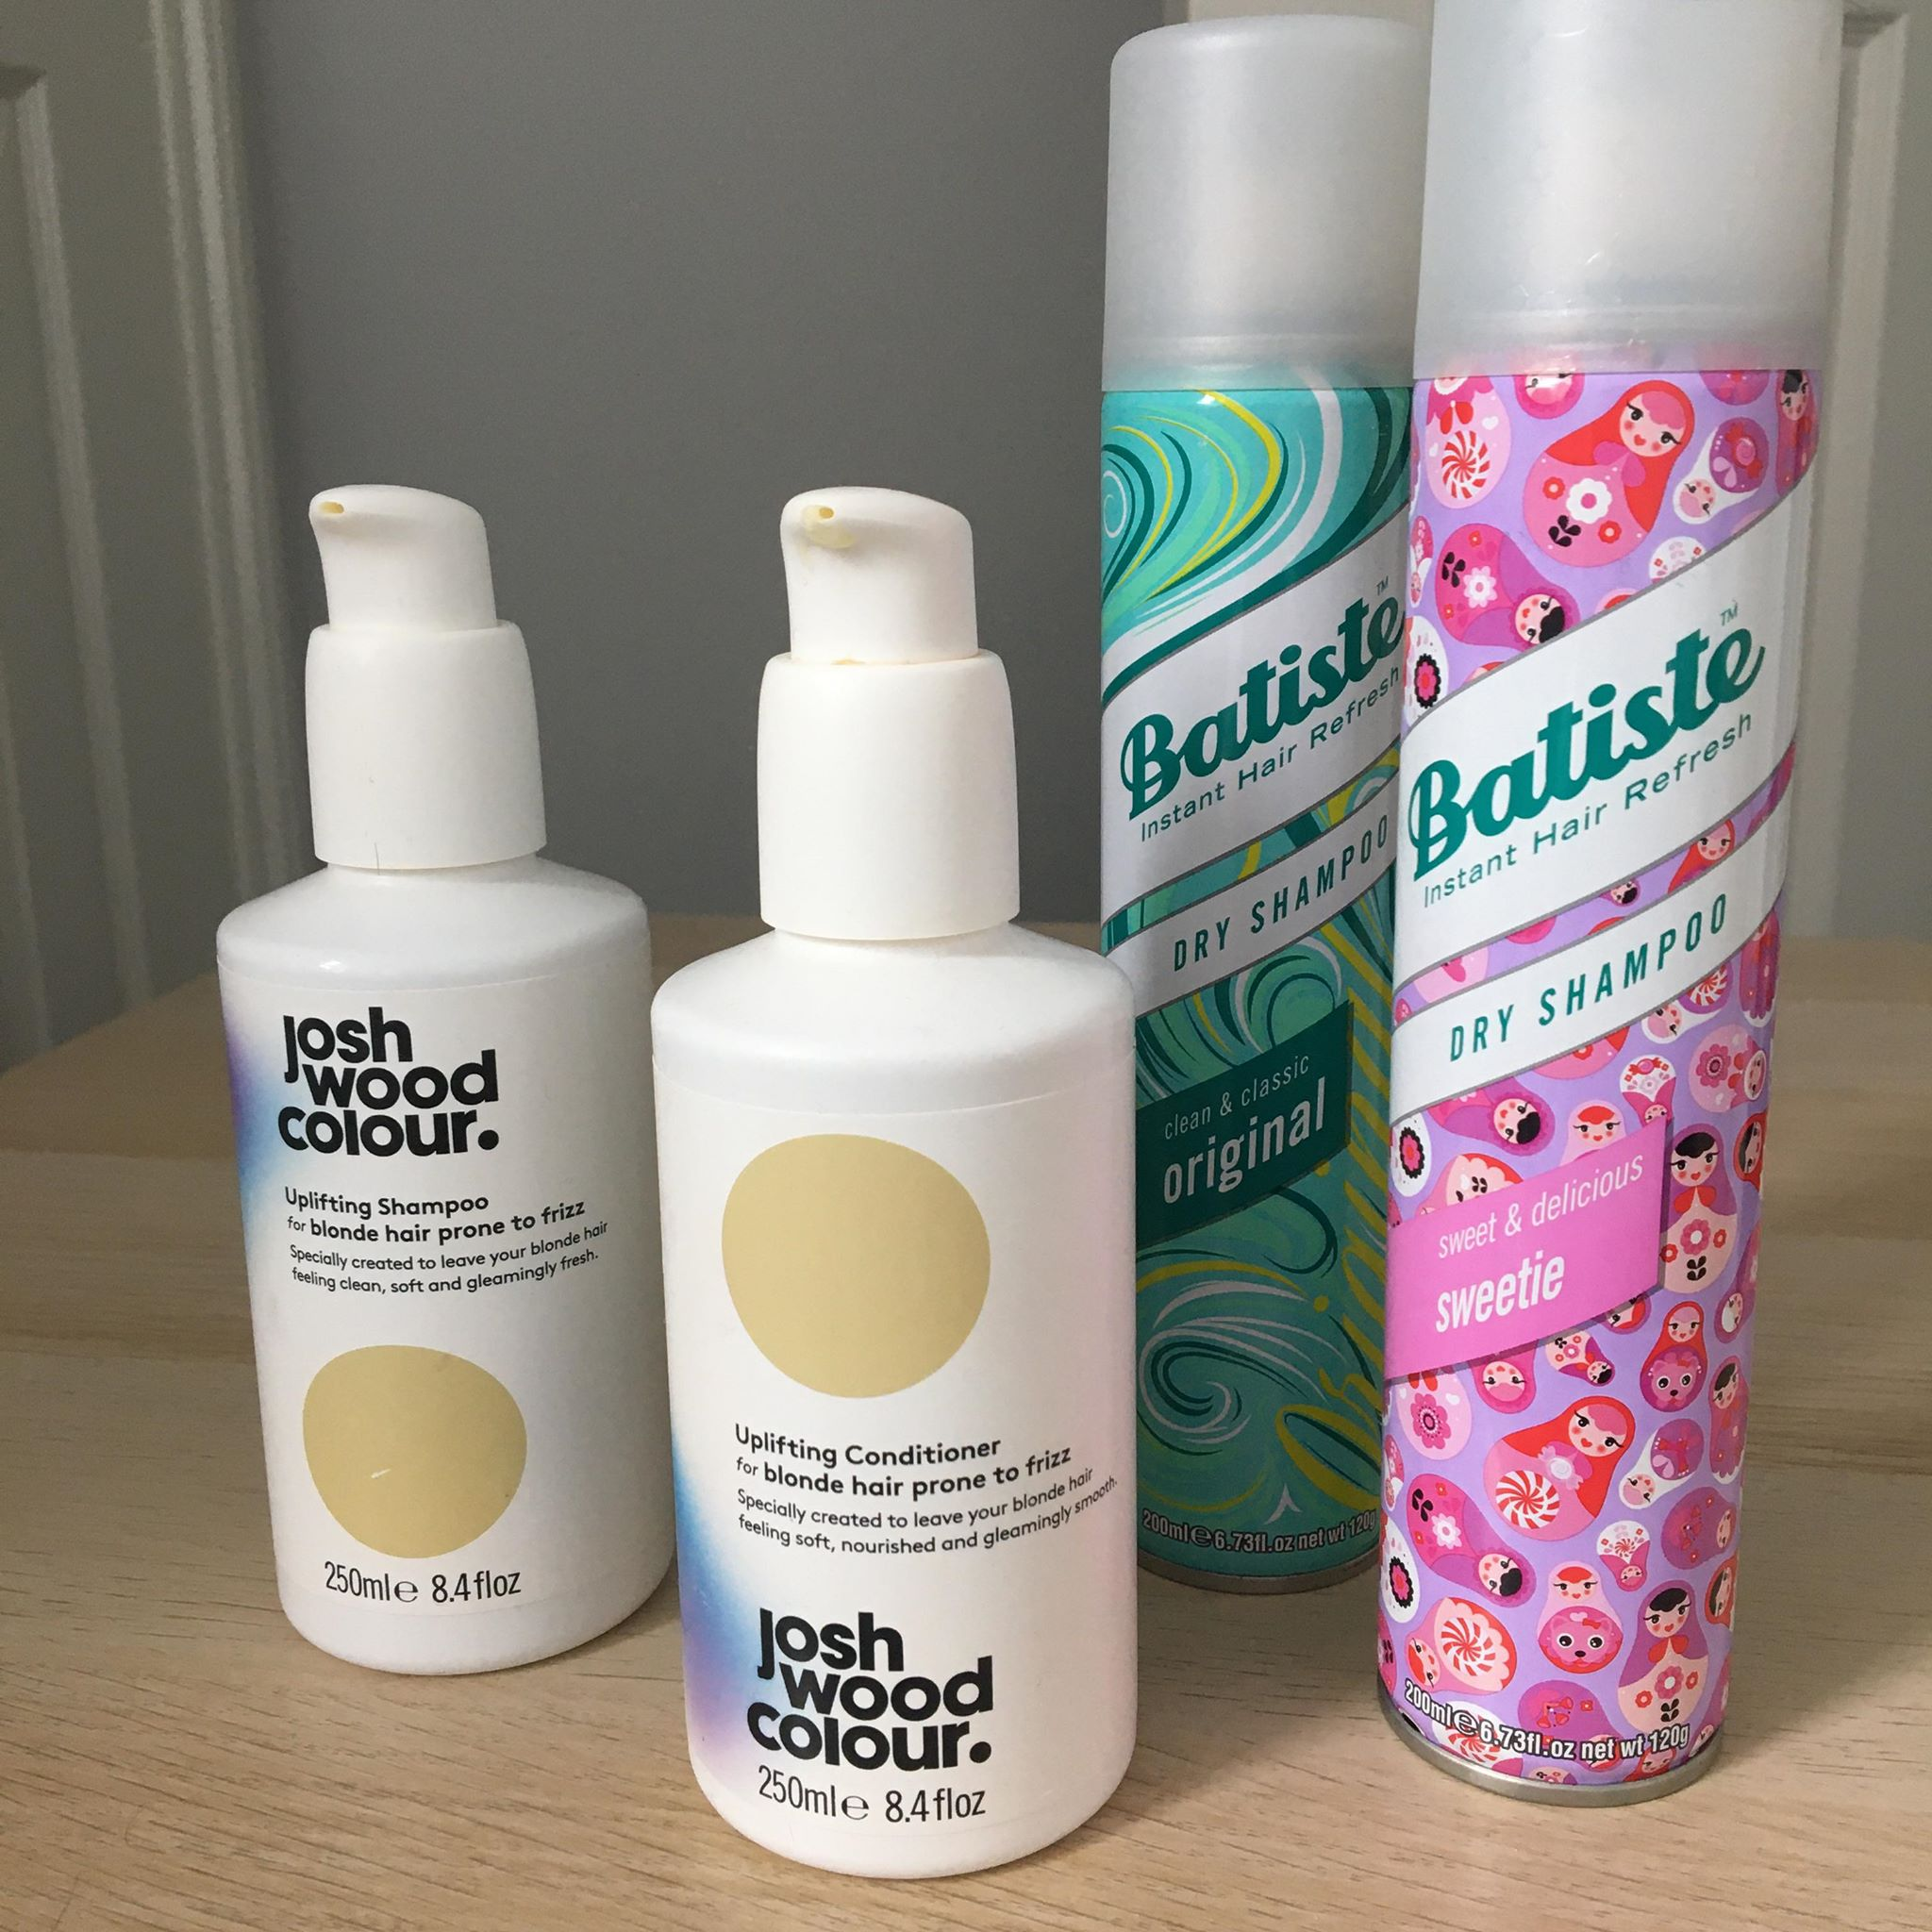 Josh Wood Colour shampoo and conditioner, two empty cans of Batiste dry shampoo - Empties